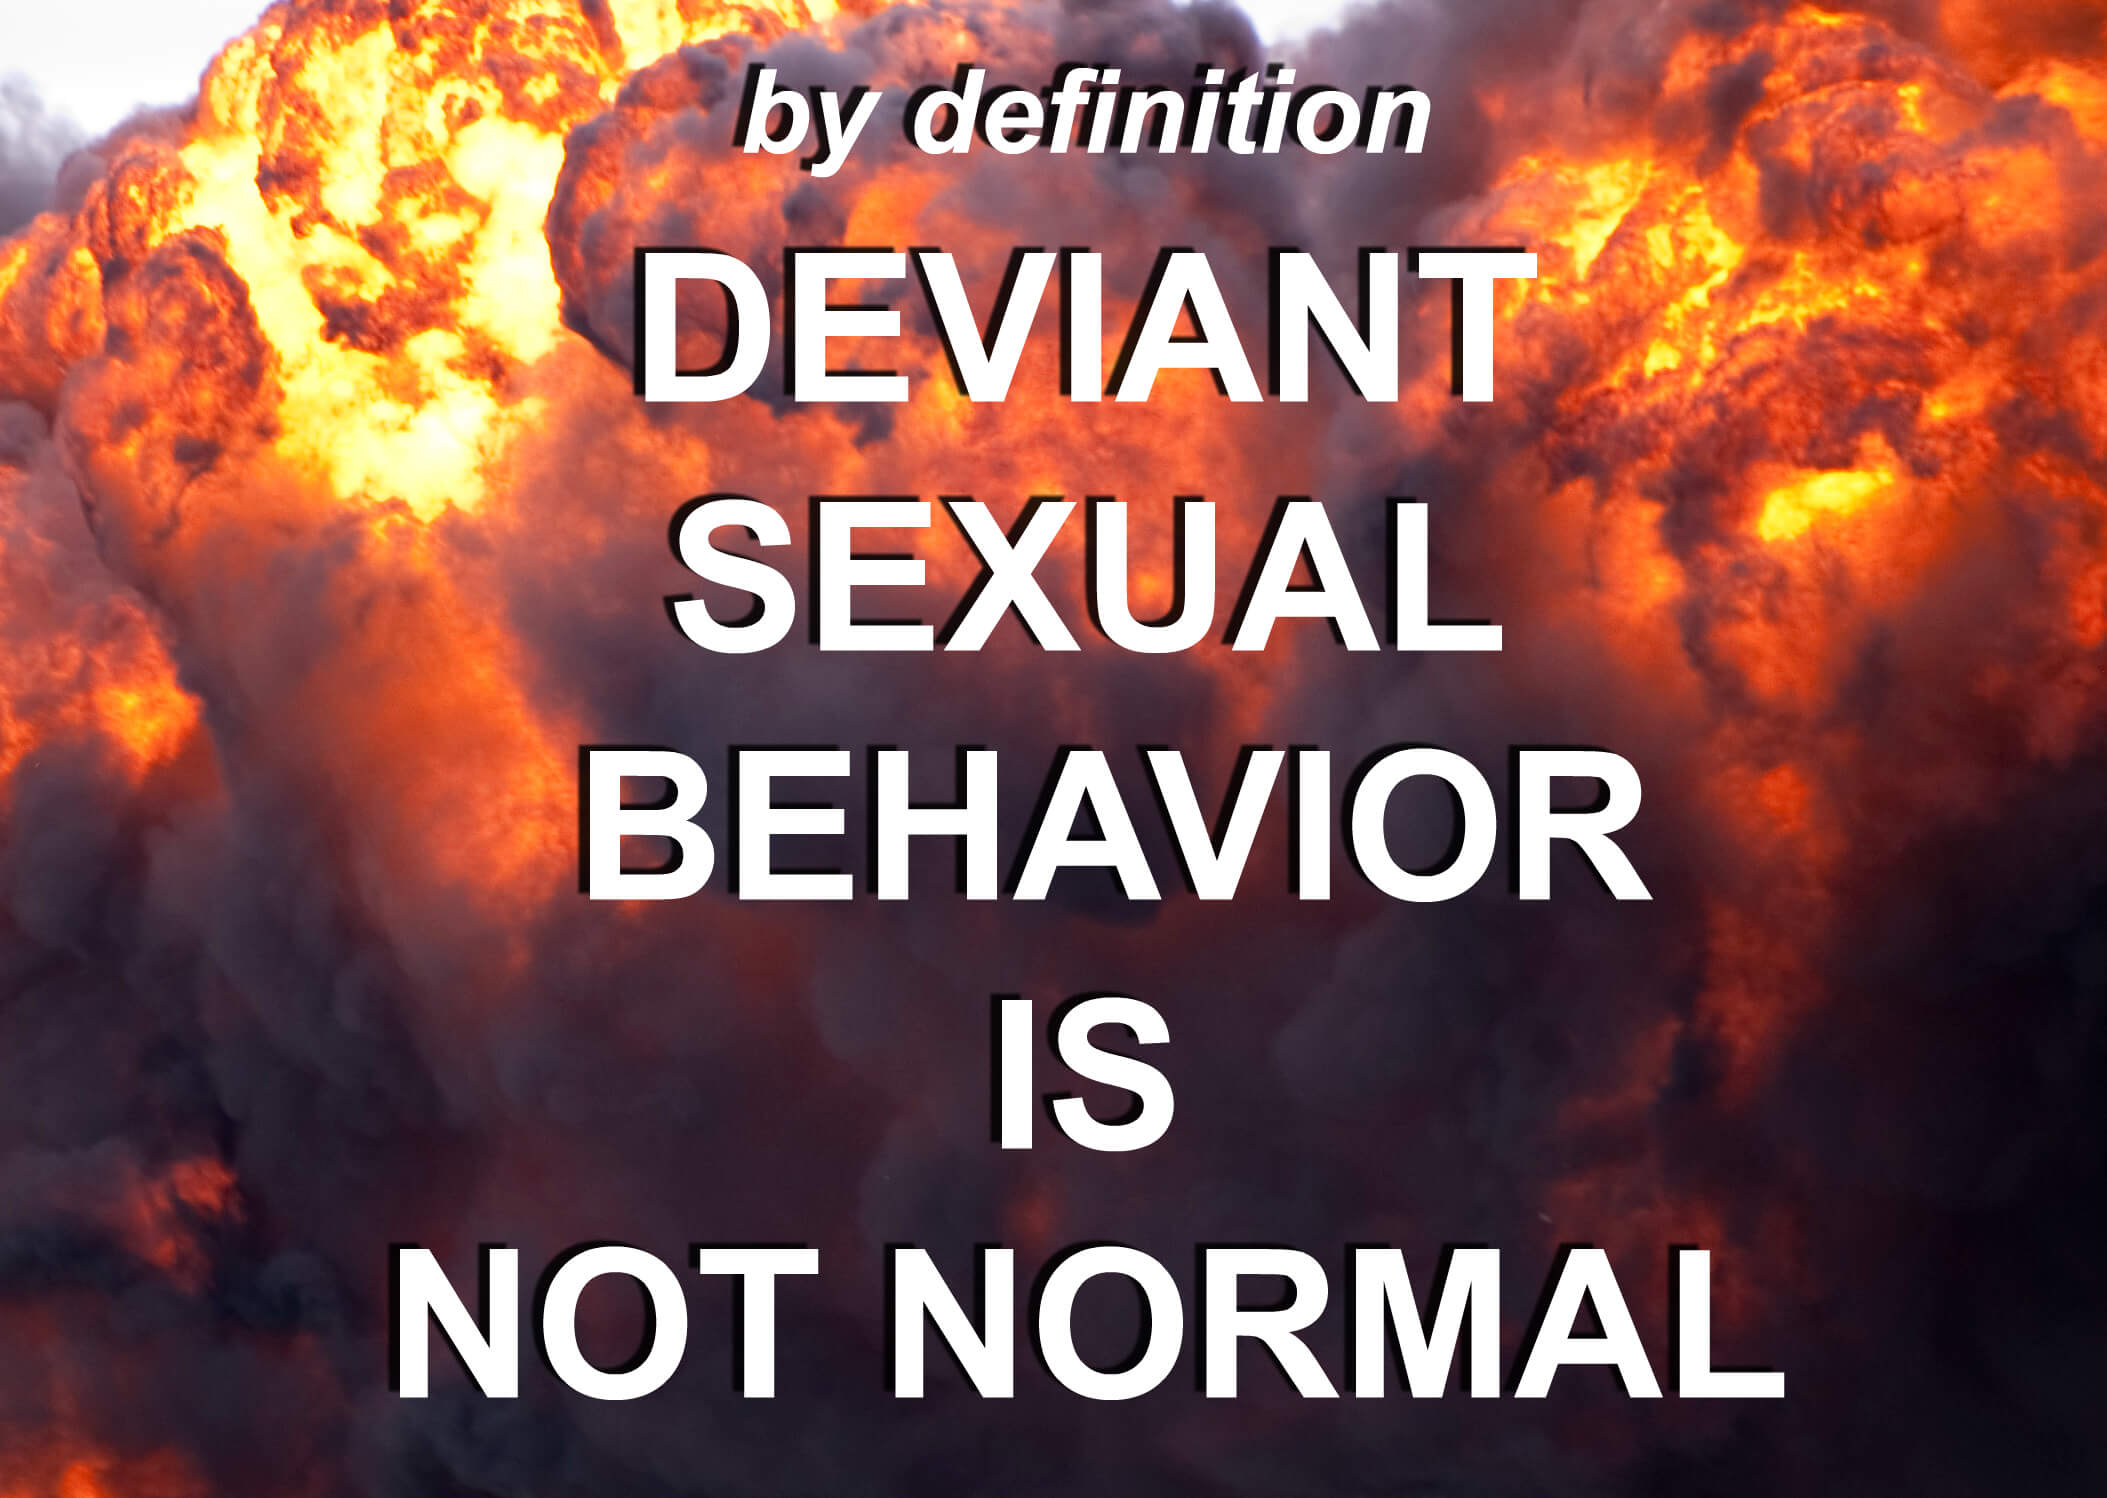 deviant sex is not normal